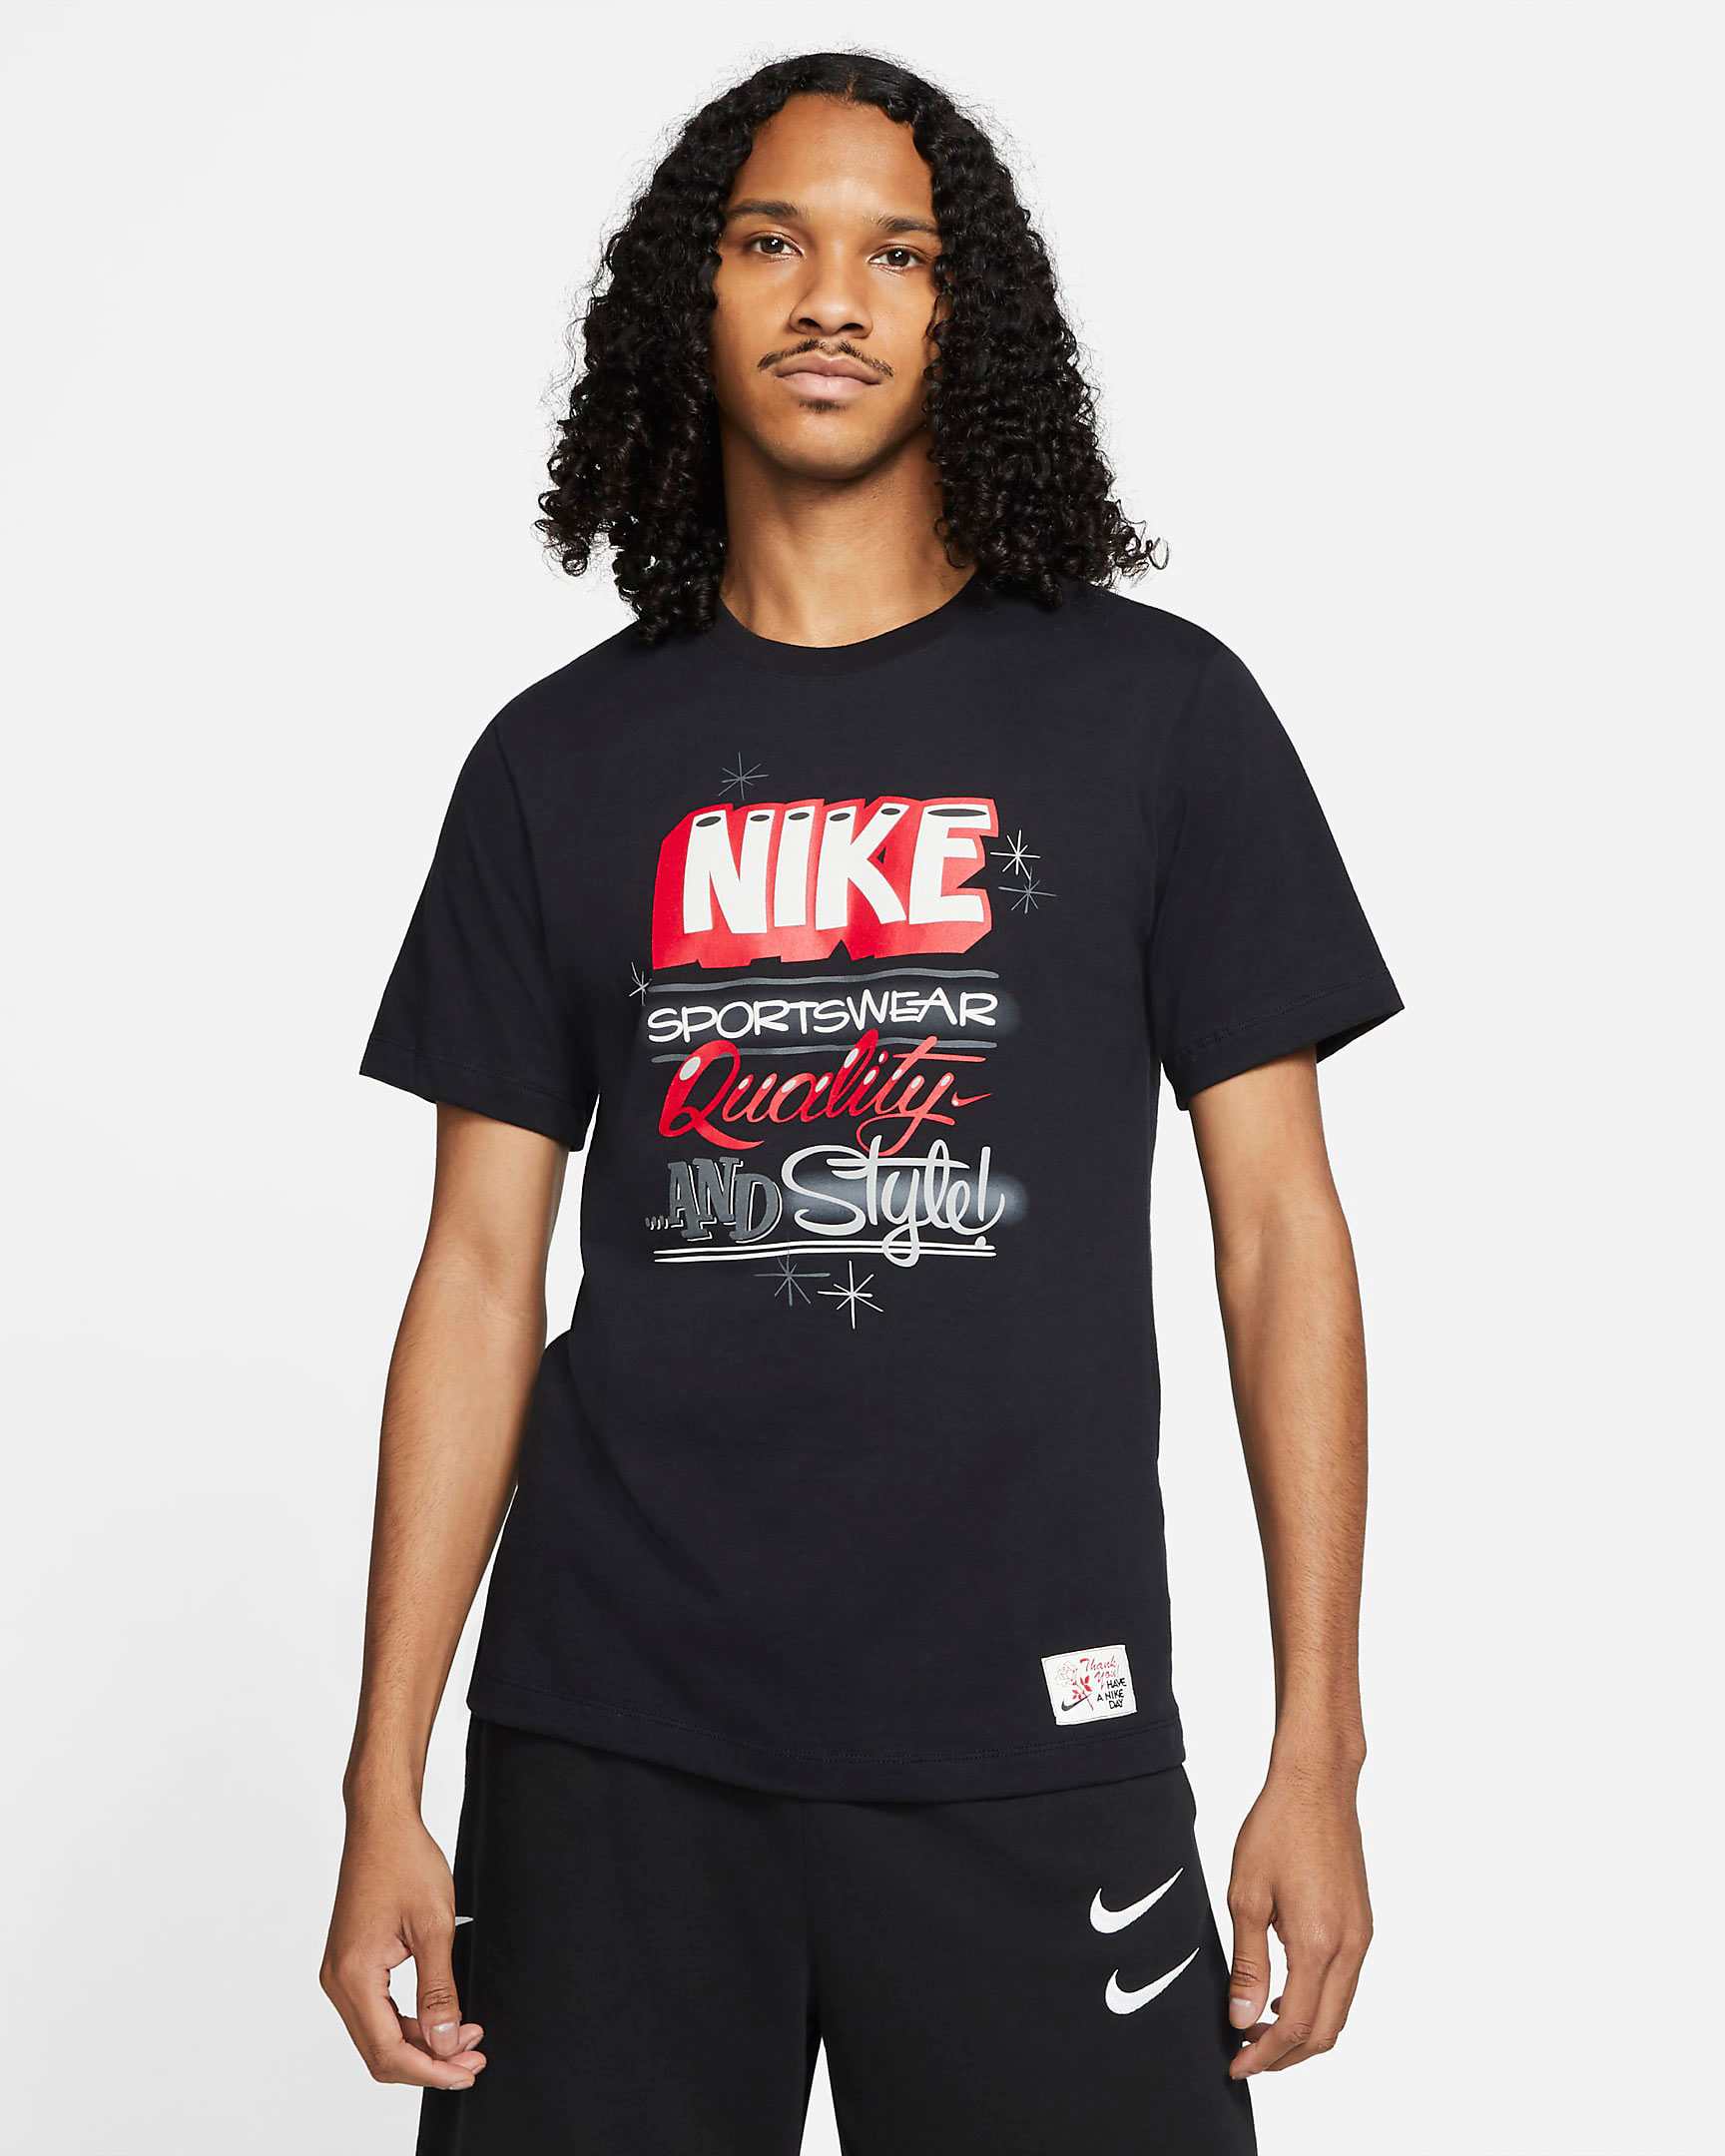 nike-bodega-shirt-black-white-red-1